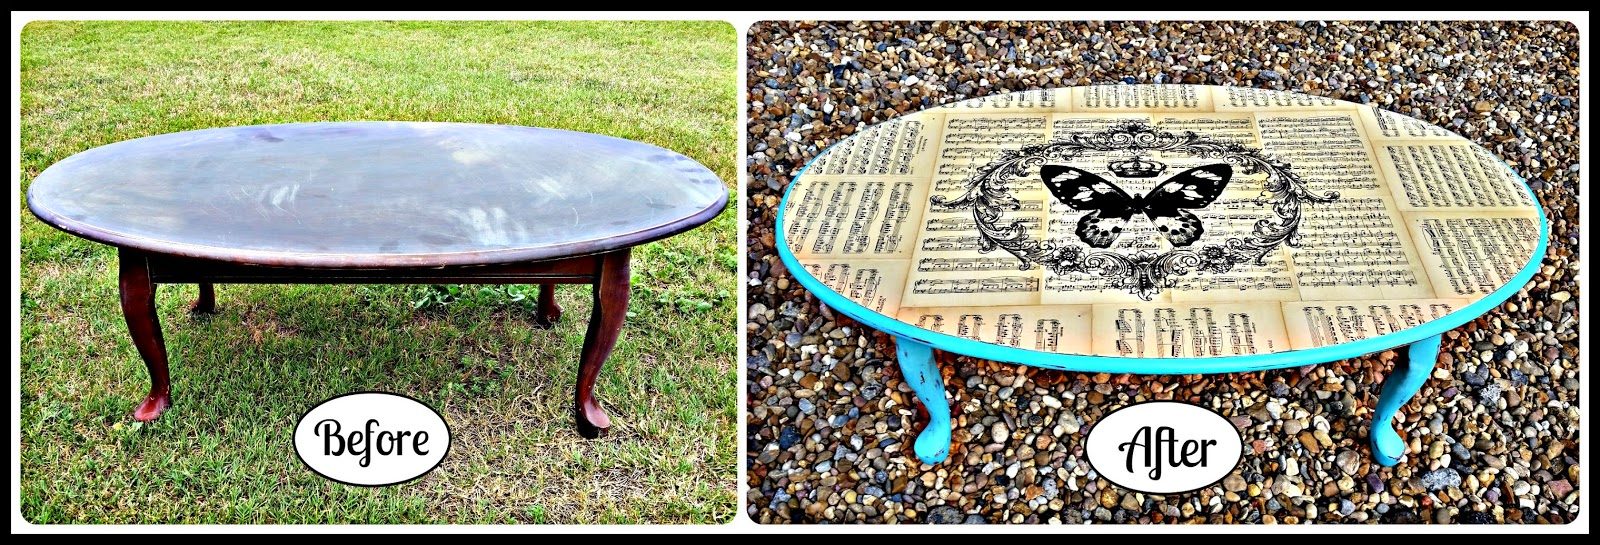 3 spurz dandc repurposed /refurbished creations!!: diy decoupage